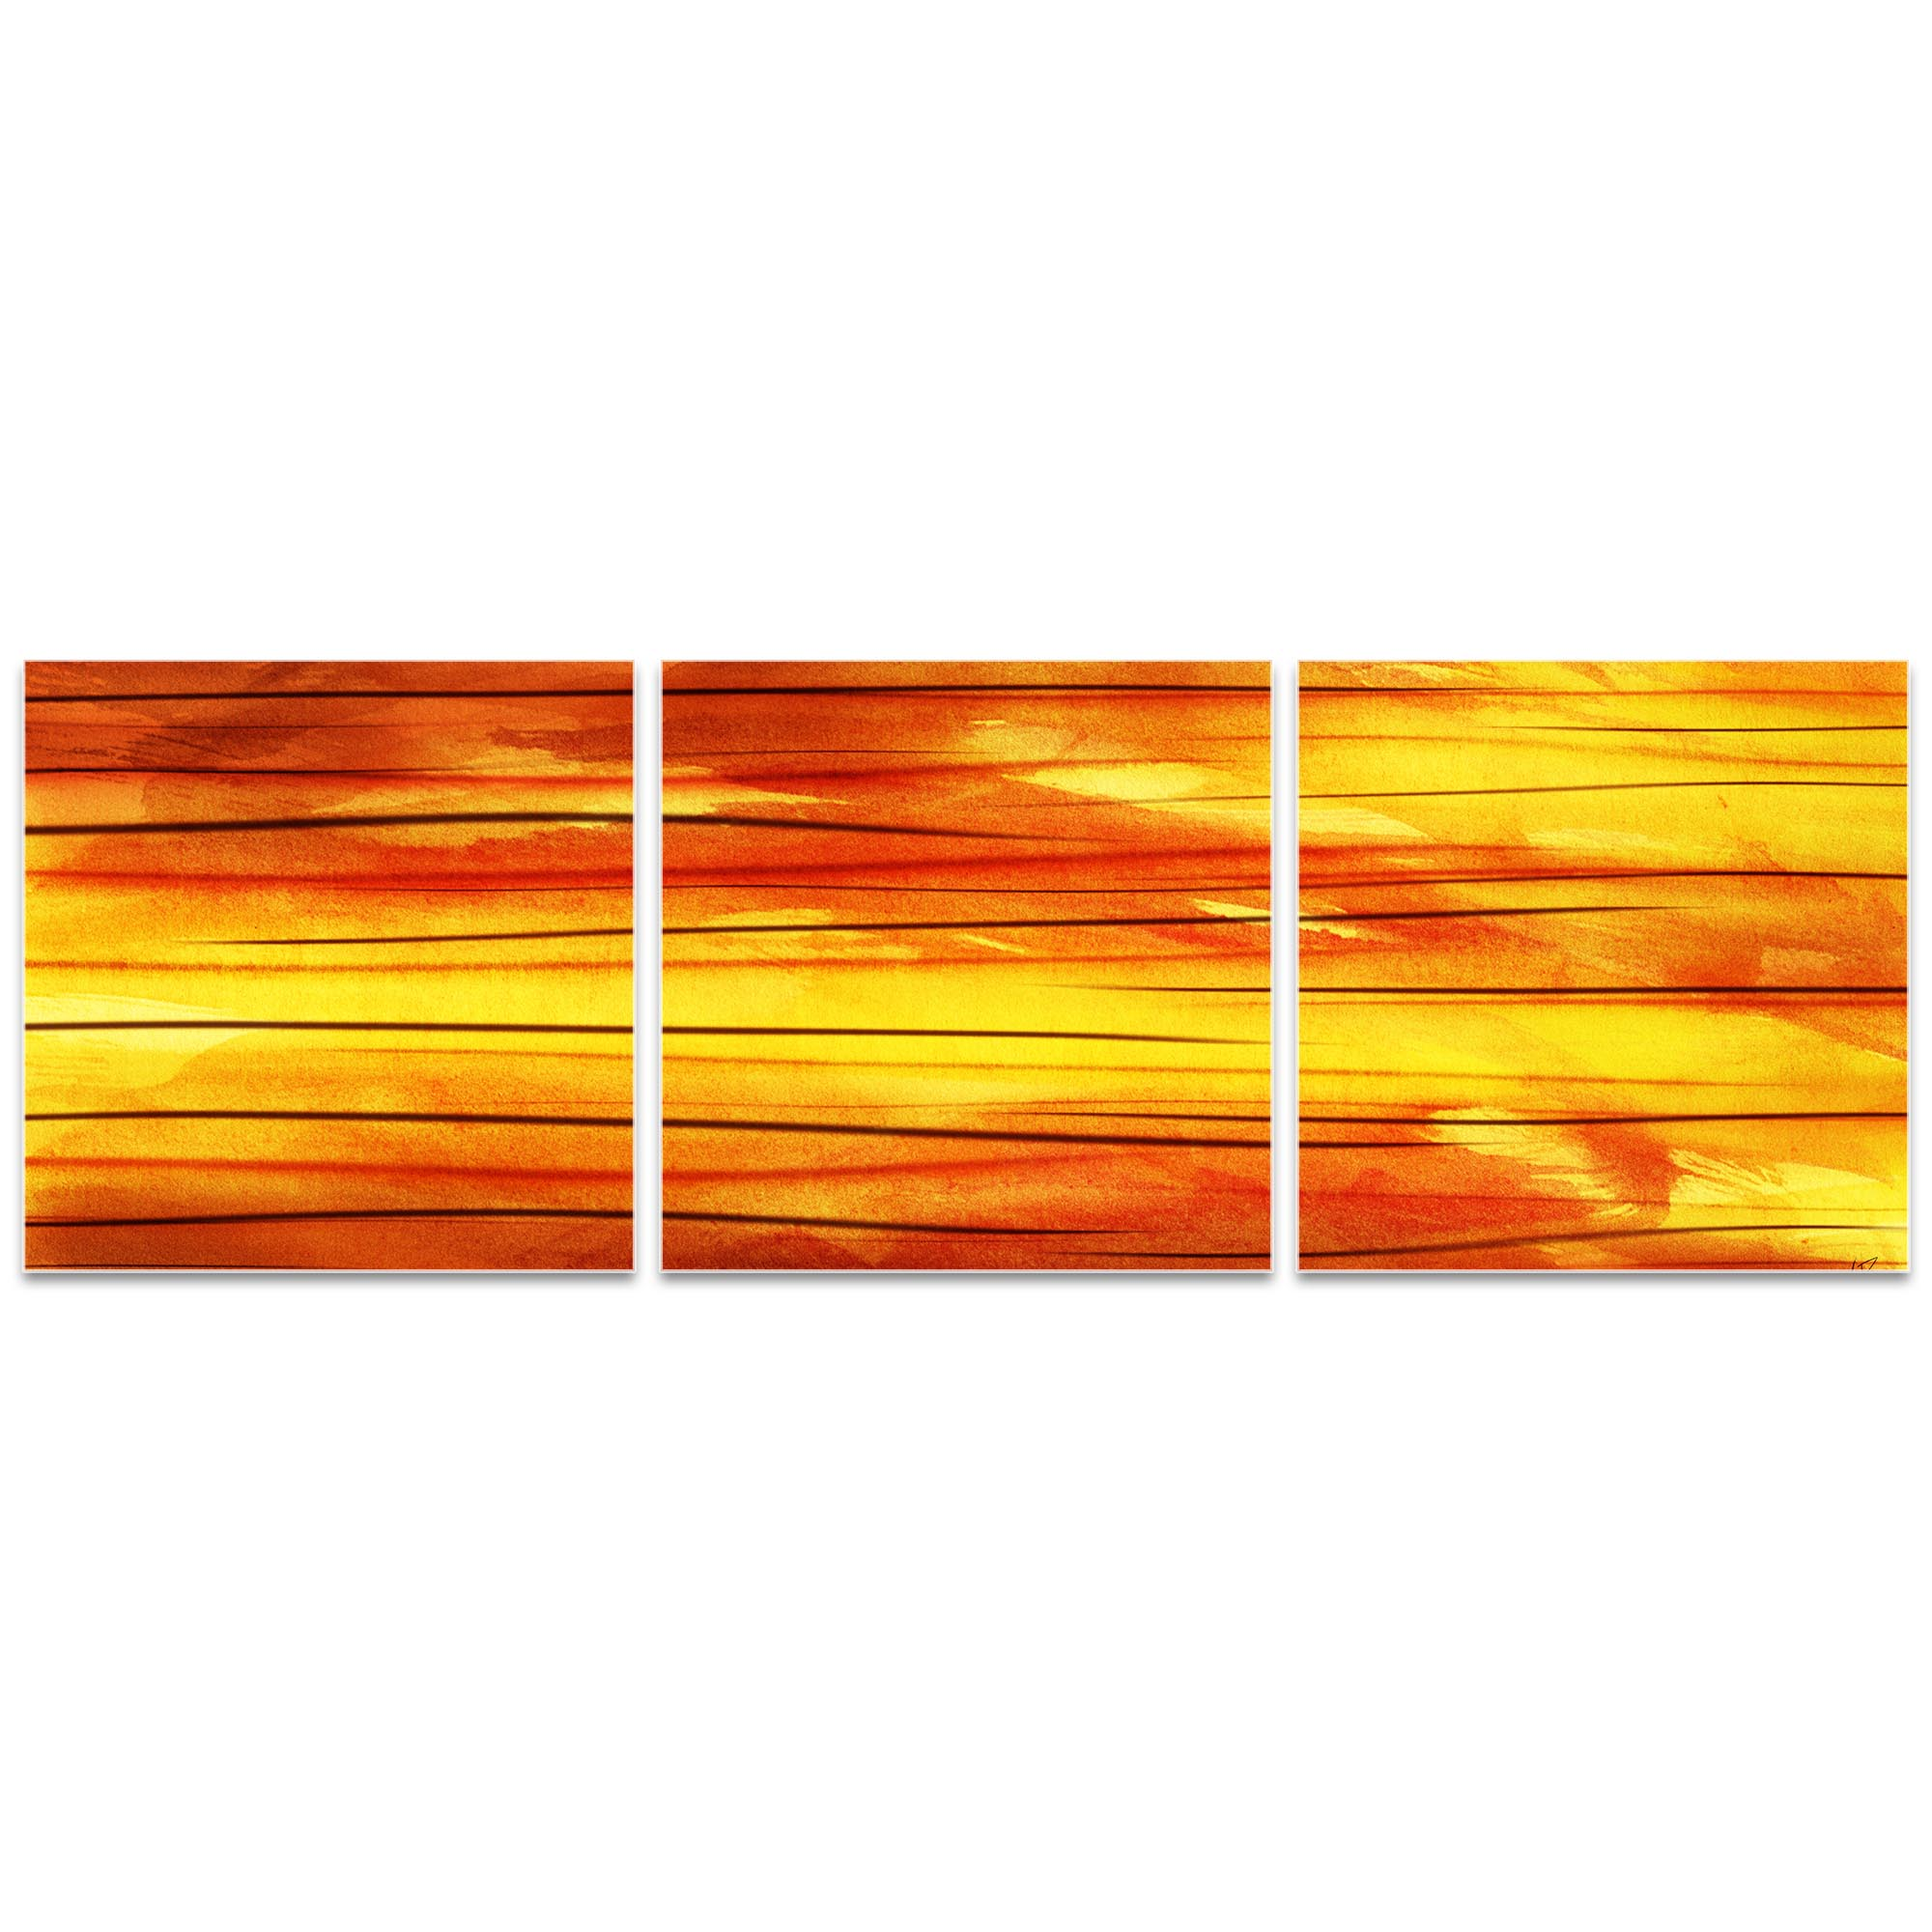 Momentum Triptych Large 70x22in. Metal or Acrylic Abstract Decor - Image 2